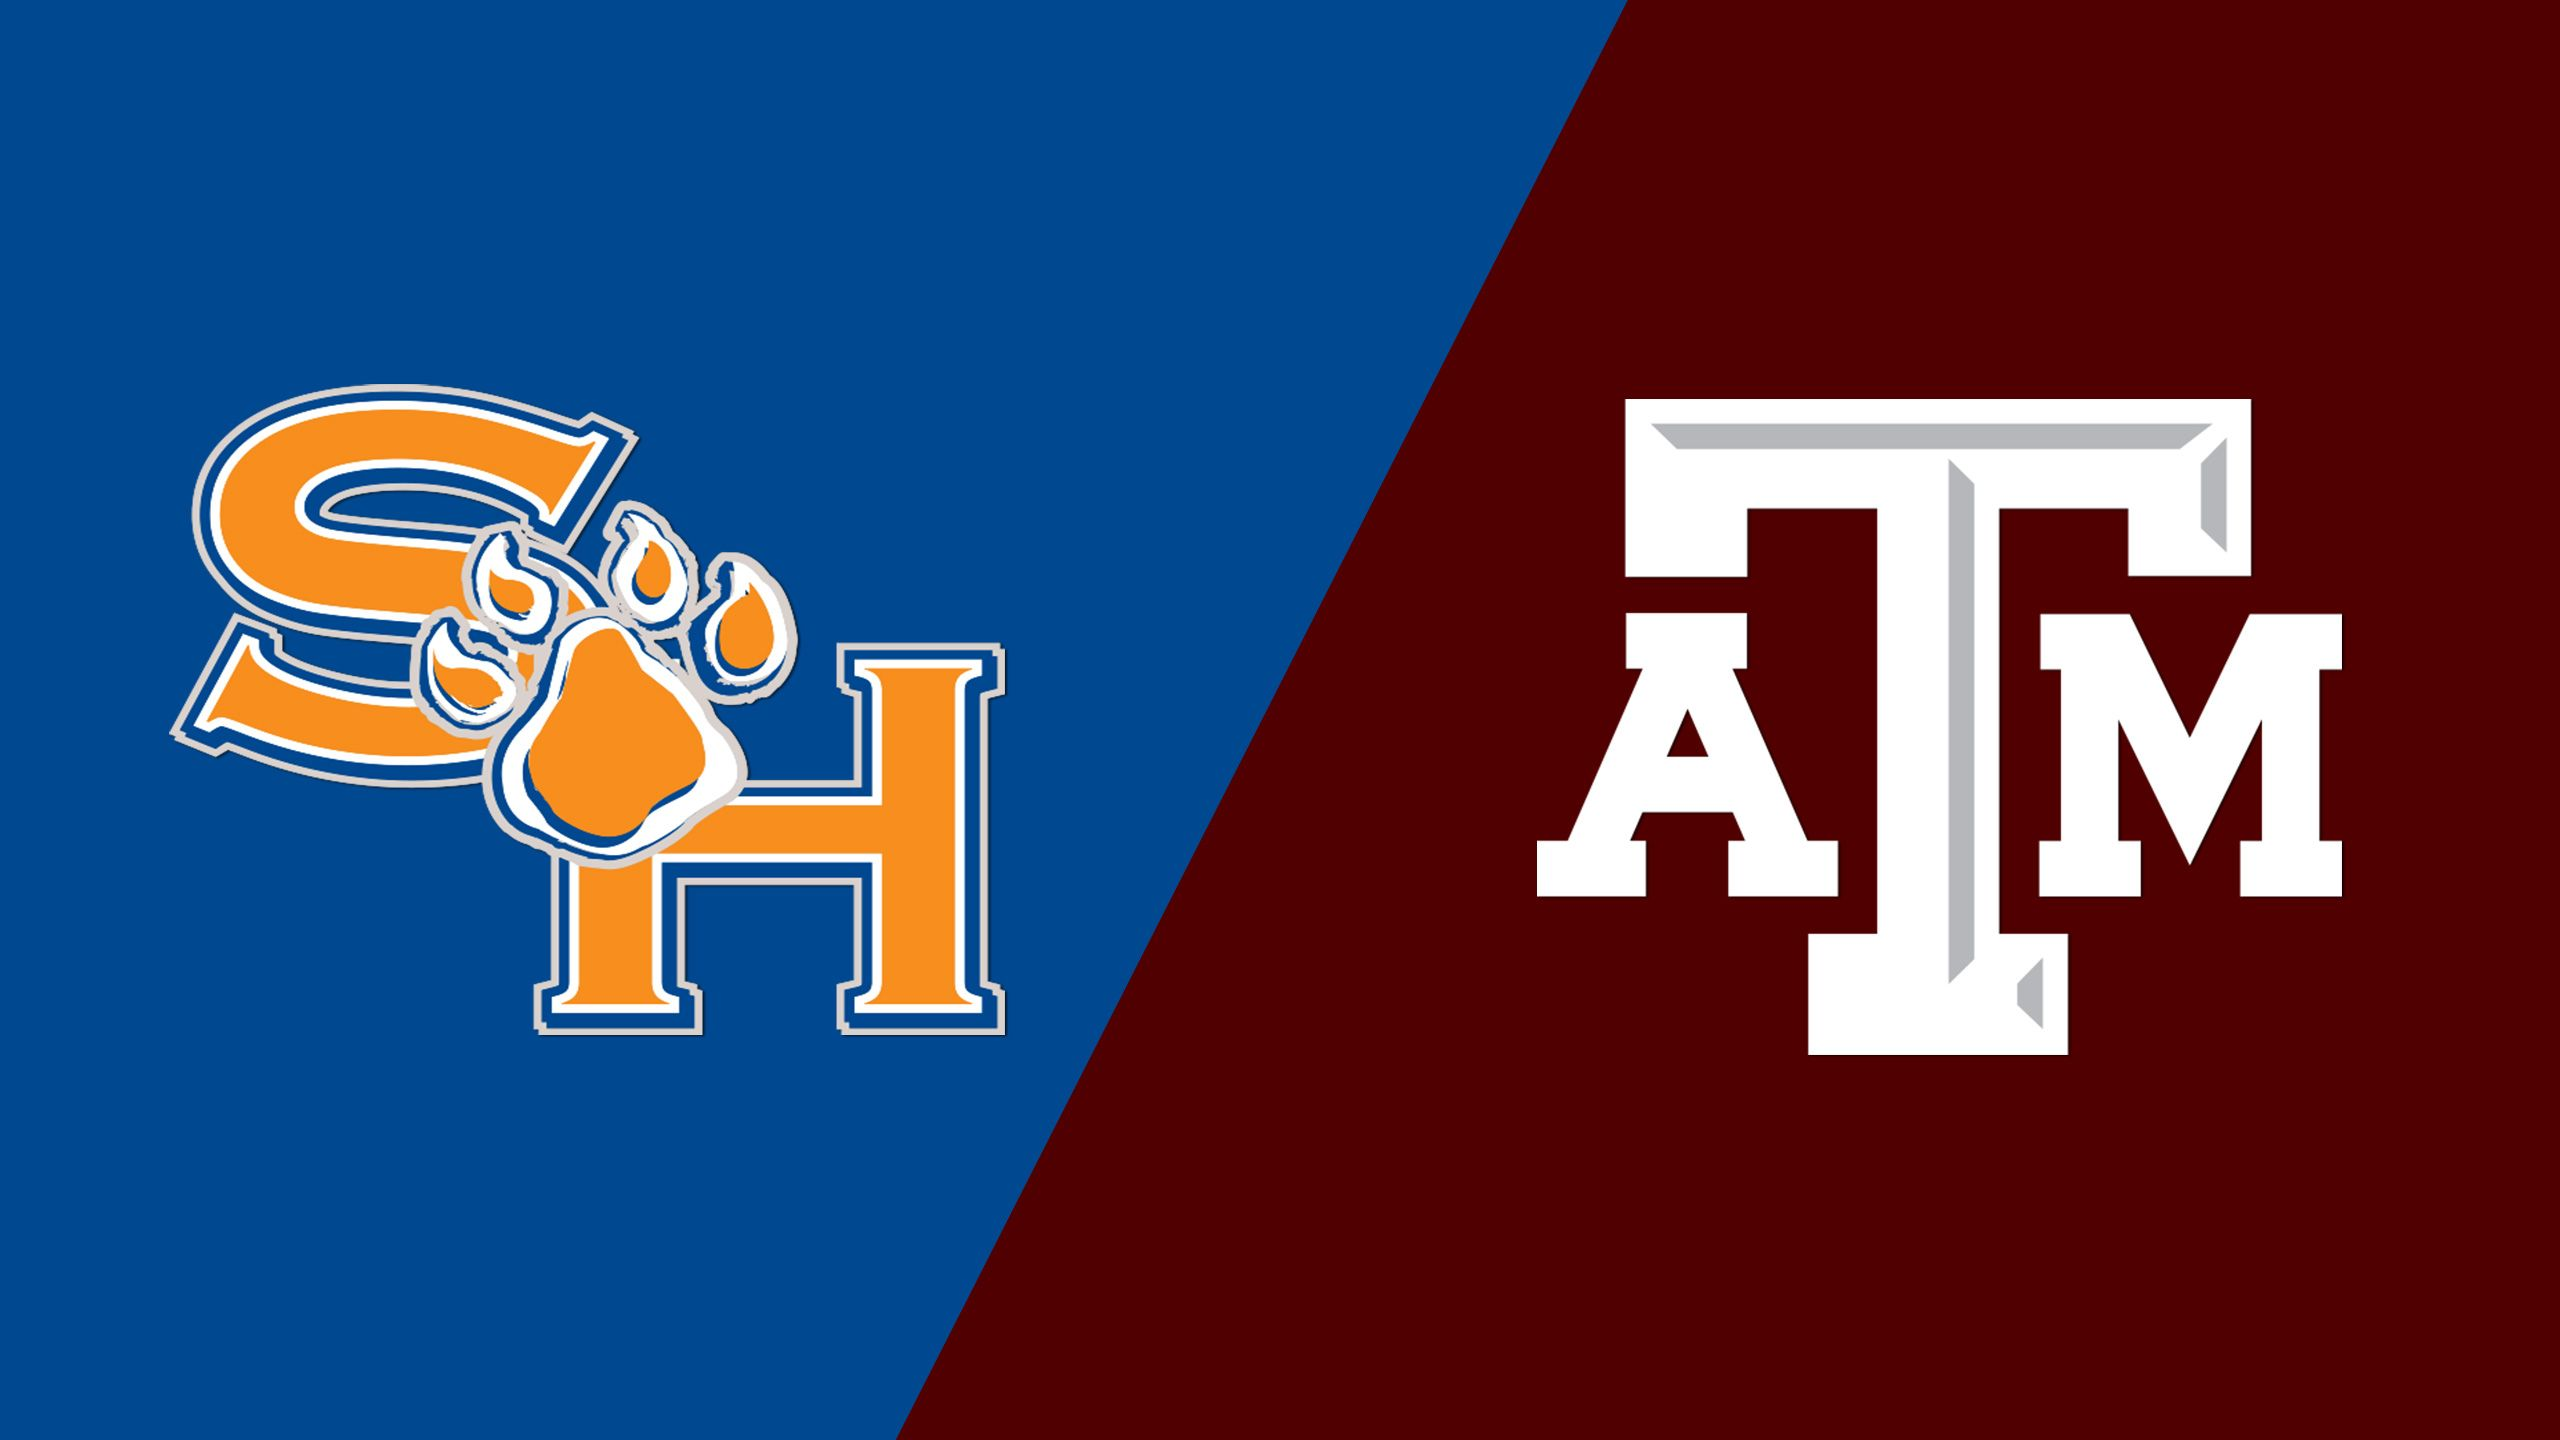 Sam Houston State vs. Texas A&M (Baseball)